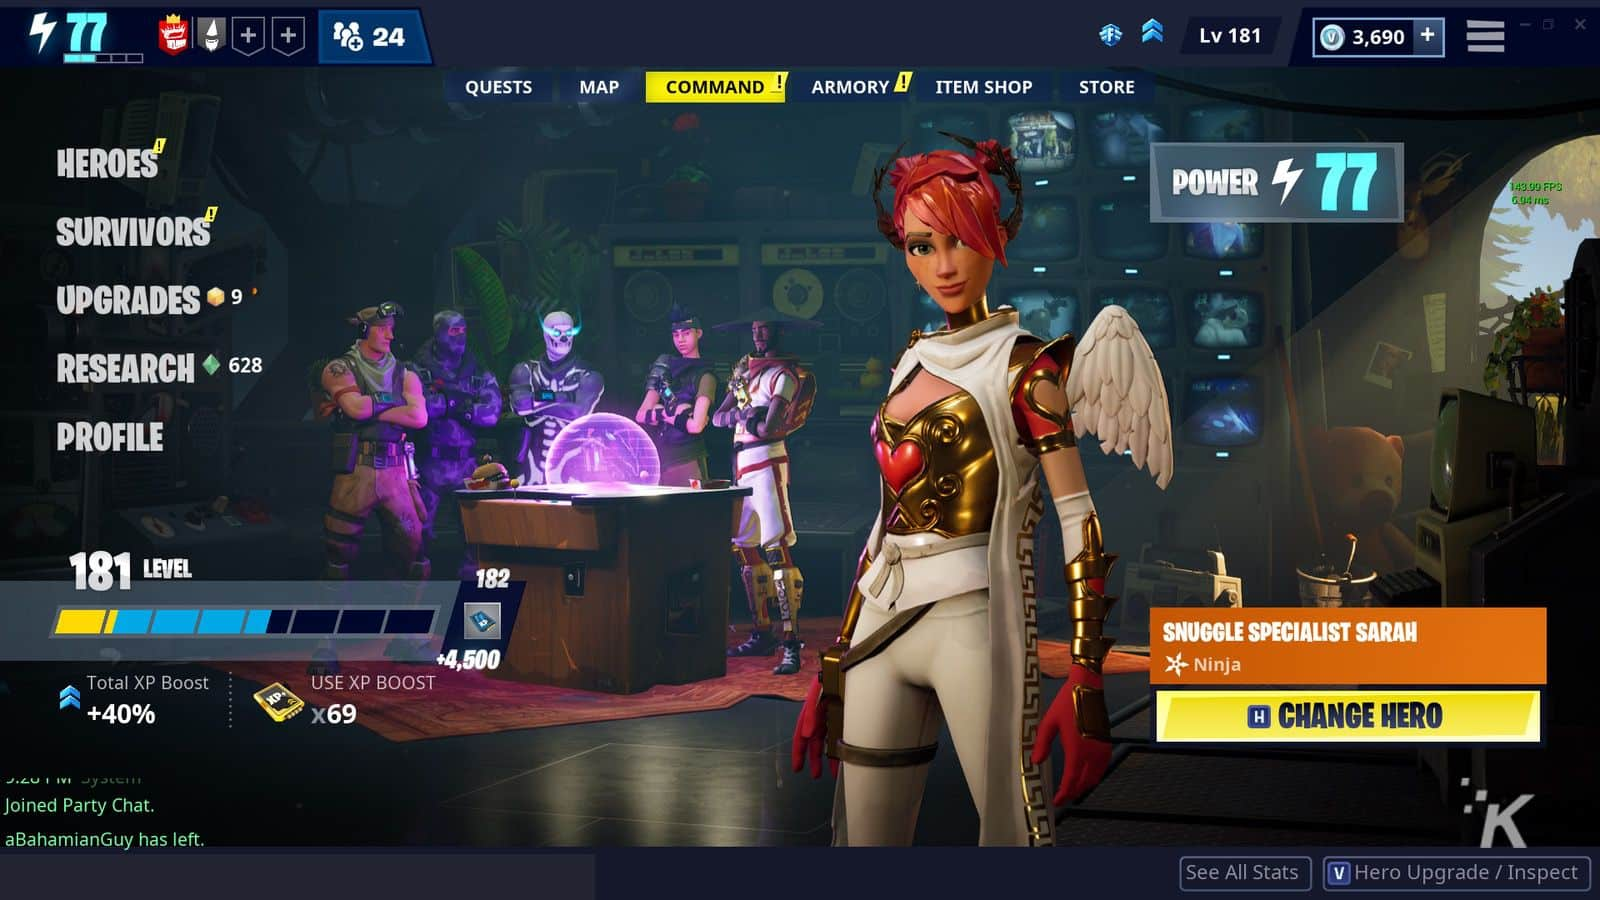 How To Cheat Fortnite Save The World A Look At All The Changes Brought With Season 8 Of Fortnite